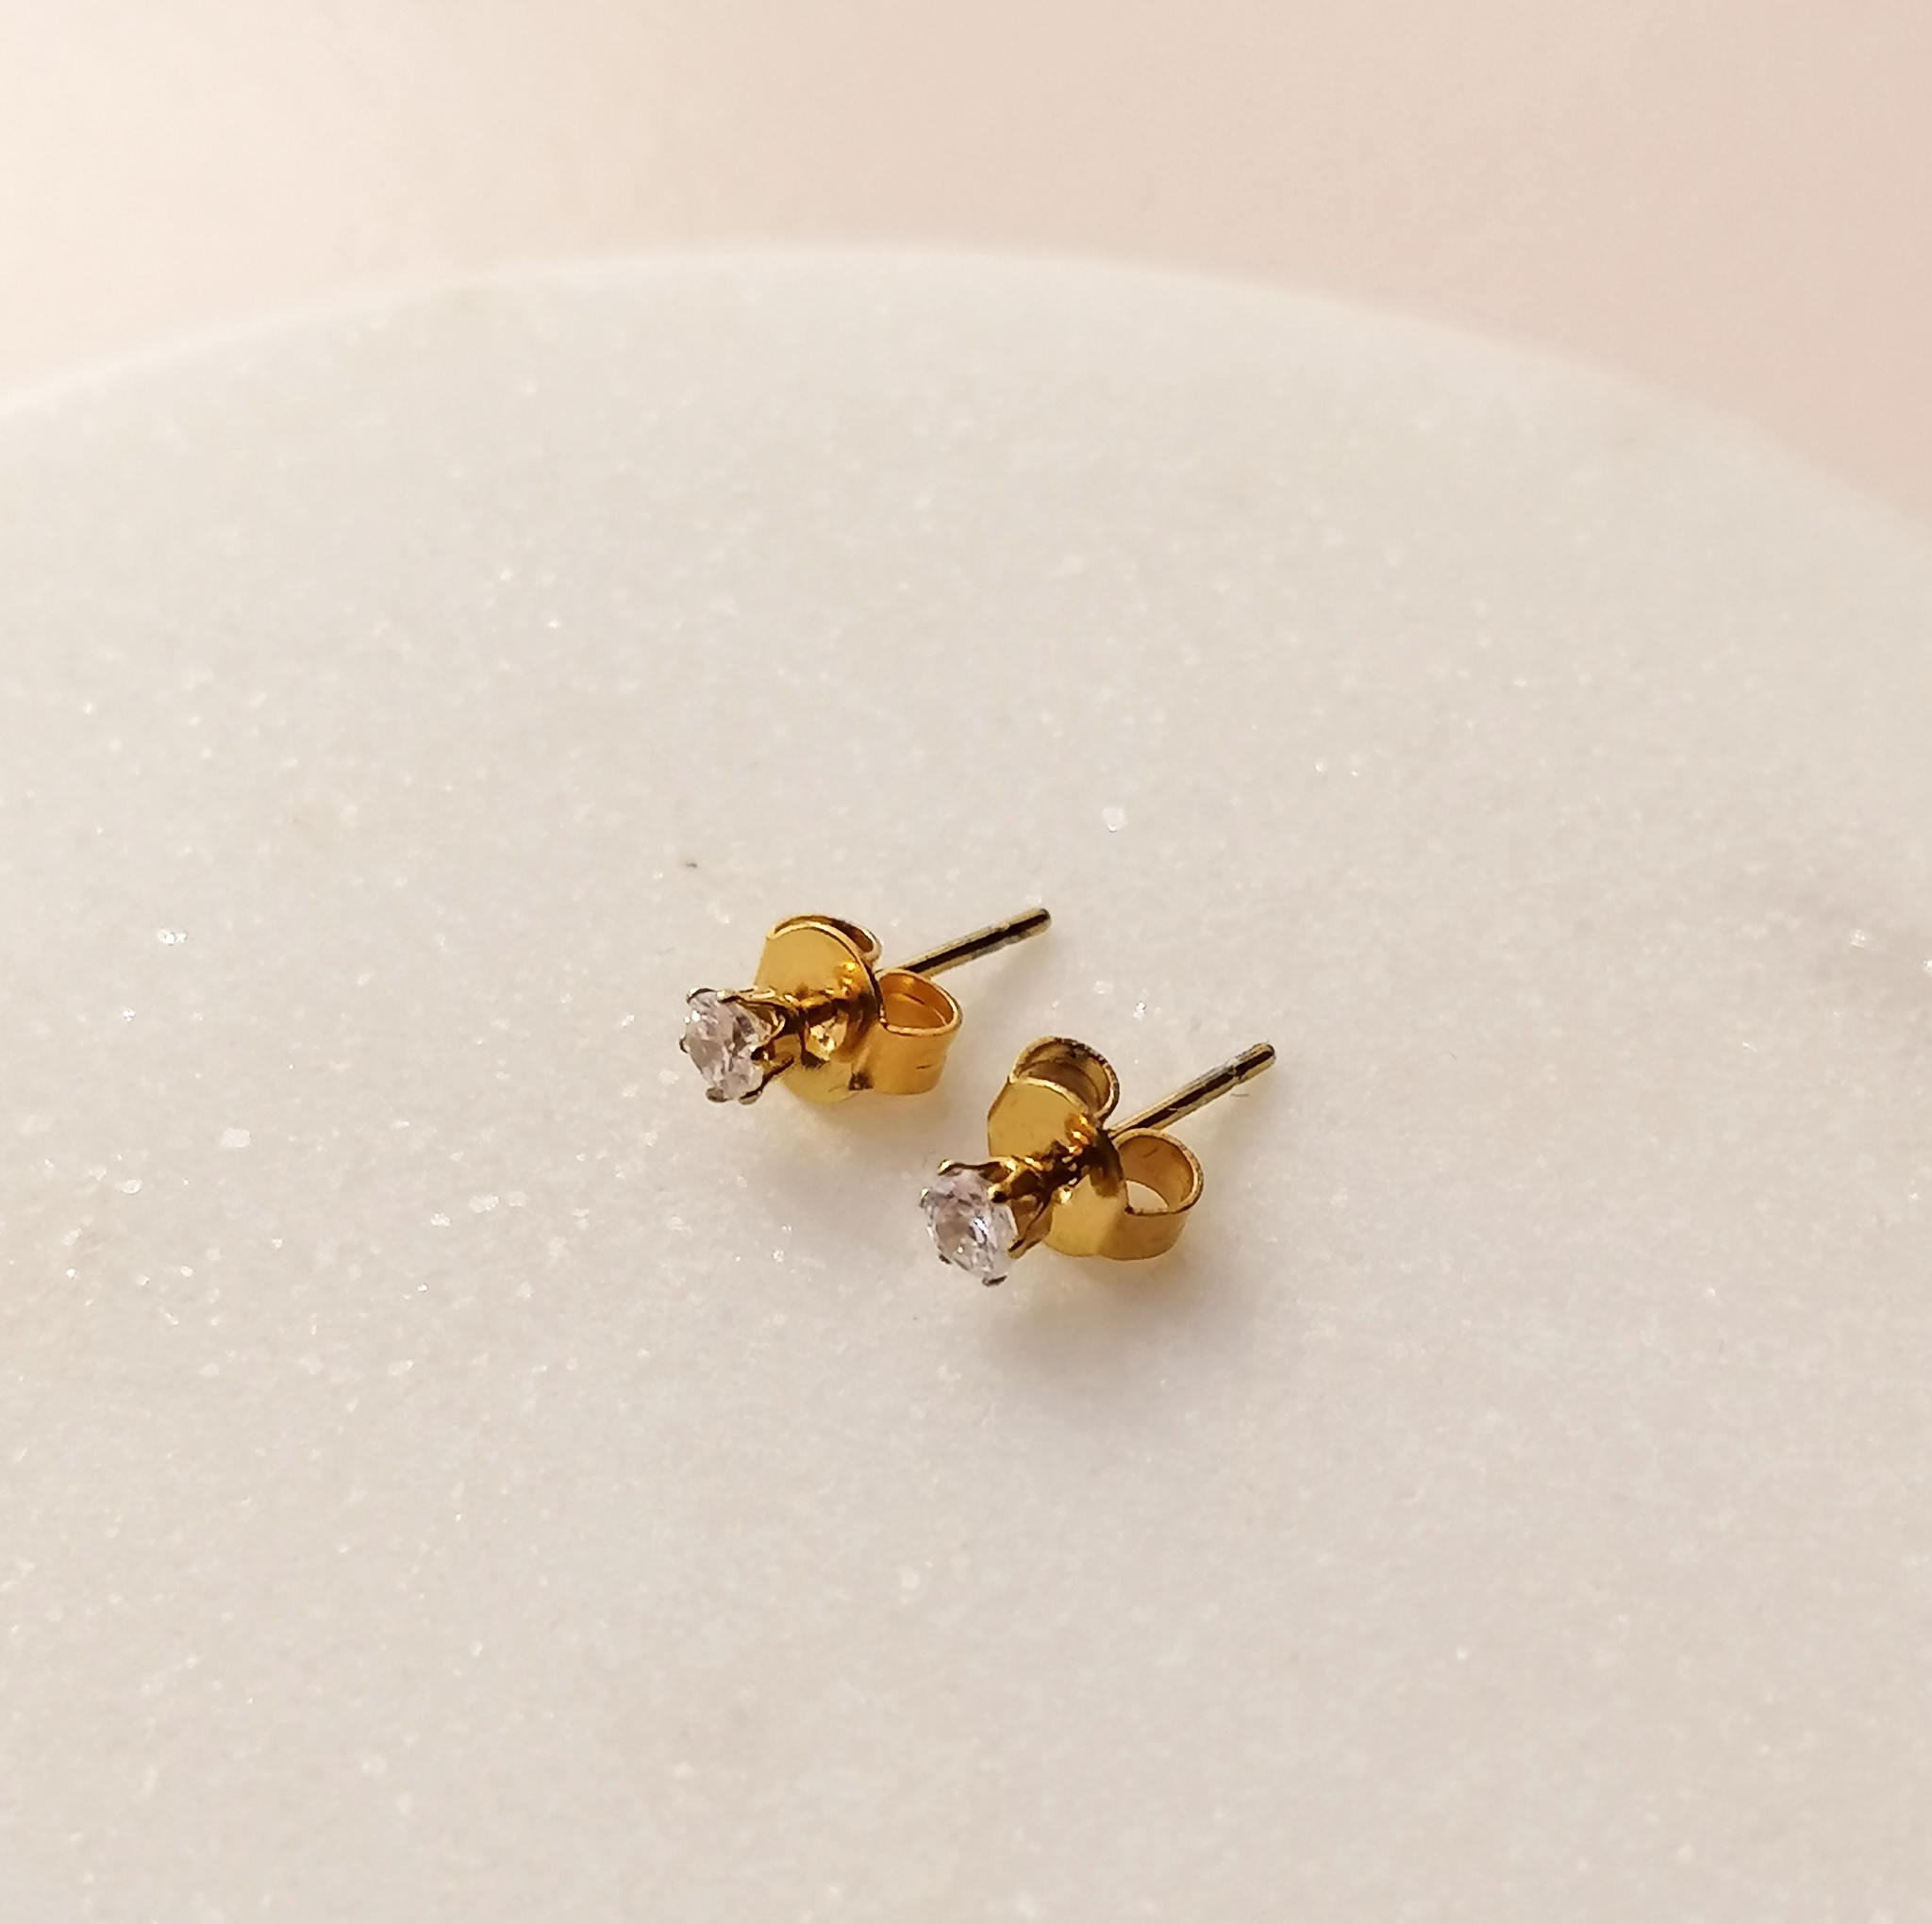 Golden stud earrings with stone - 925 sterling silver-5